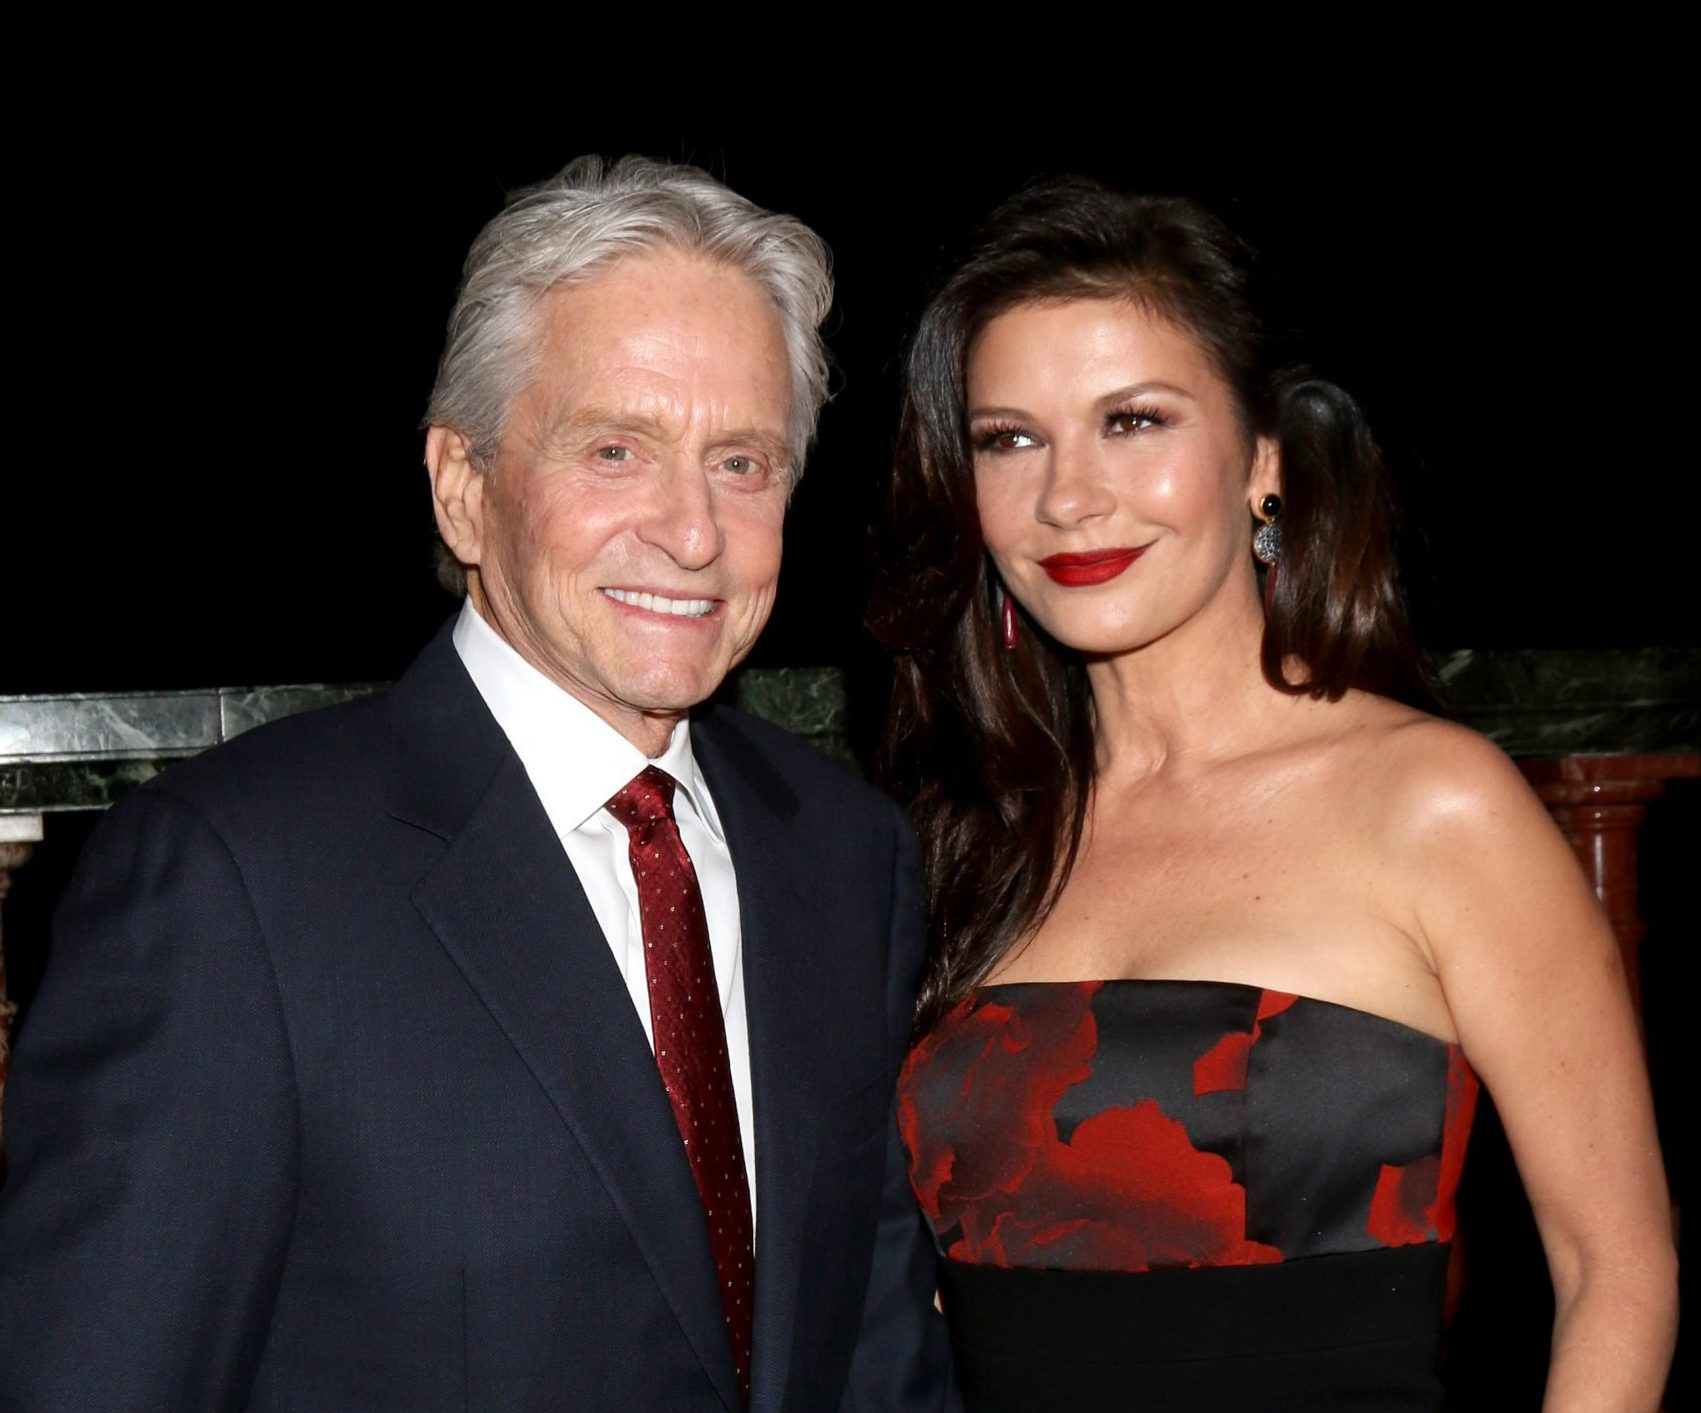 Michael Douglas dressed in a black suit, white shirt and red tie, smiles while standing next to Catherine Zeta-Jones who is wearing a red and black strapless dress, has her long dark hair out and red lipstick on.